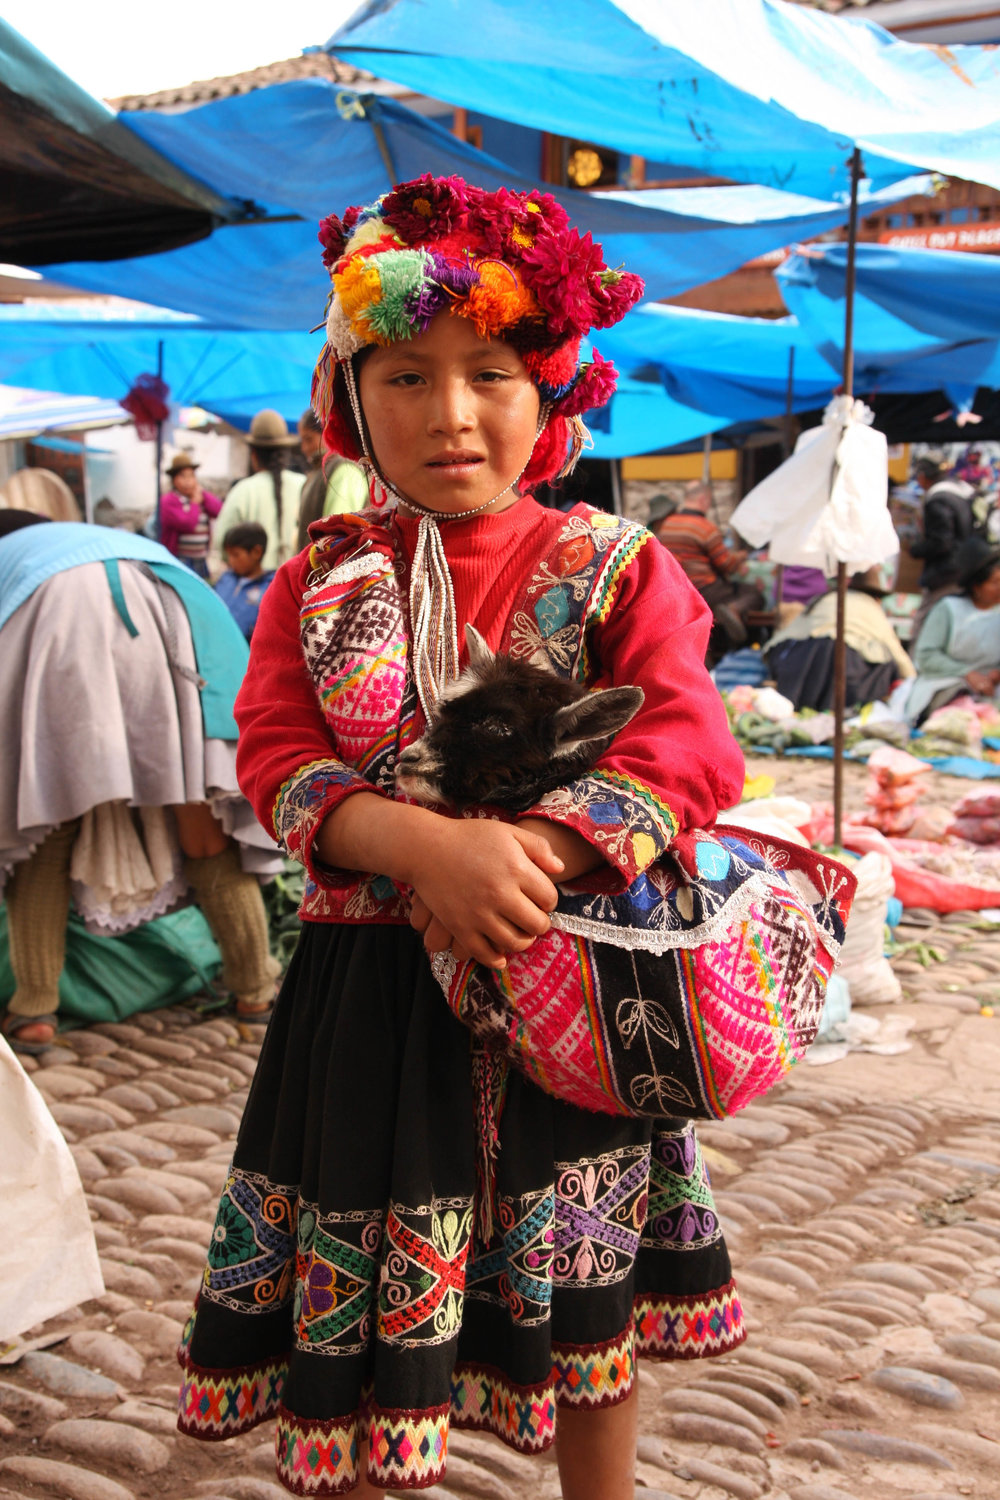 in the Pisac market